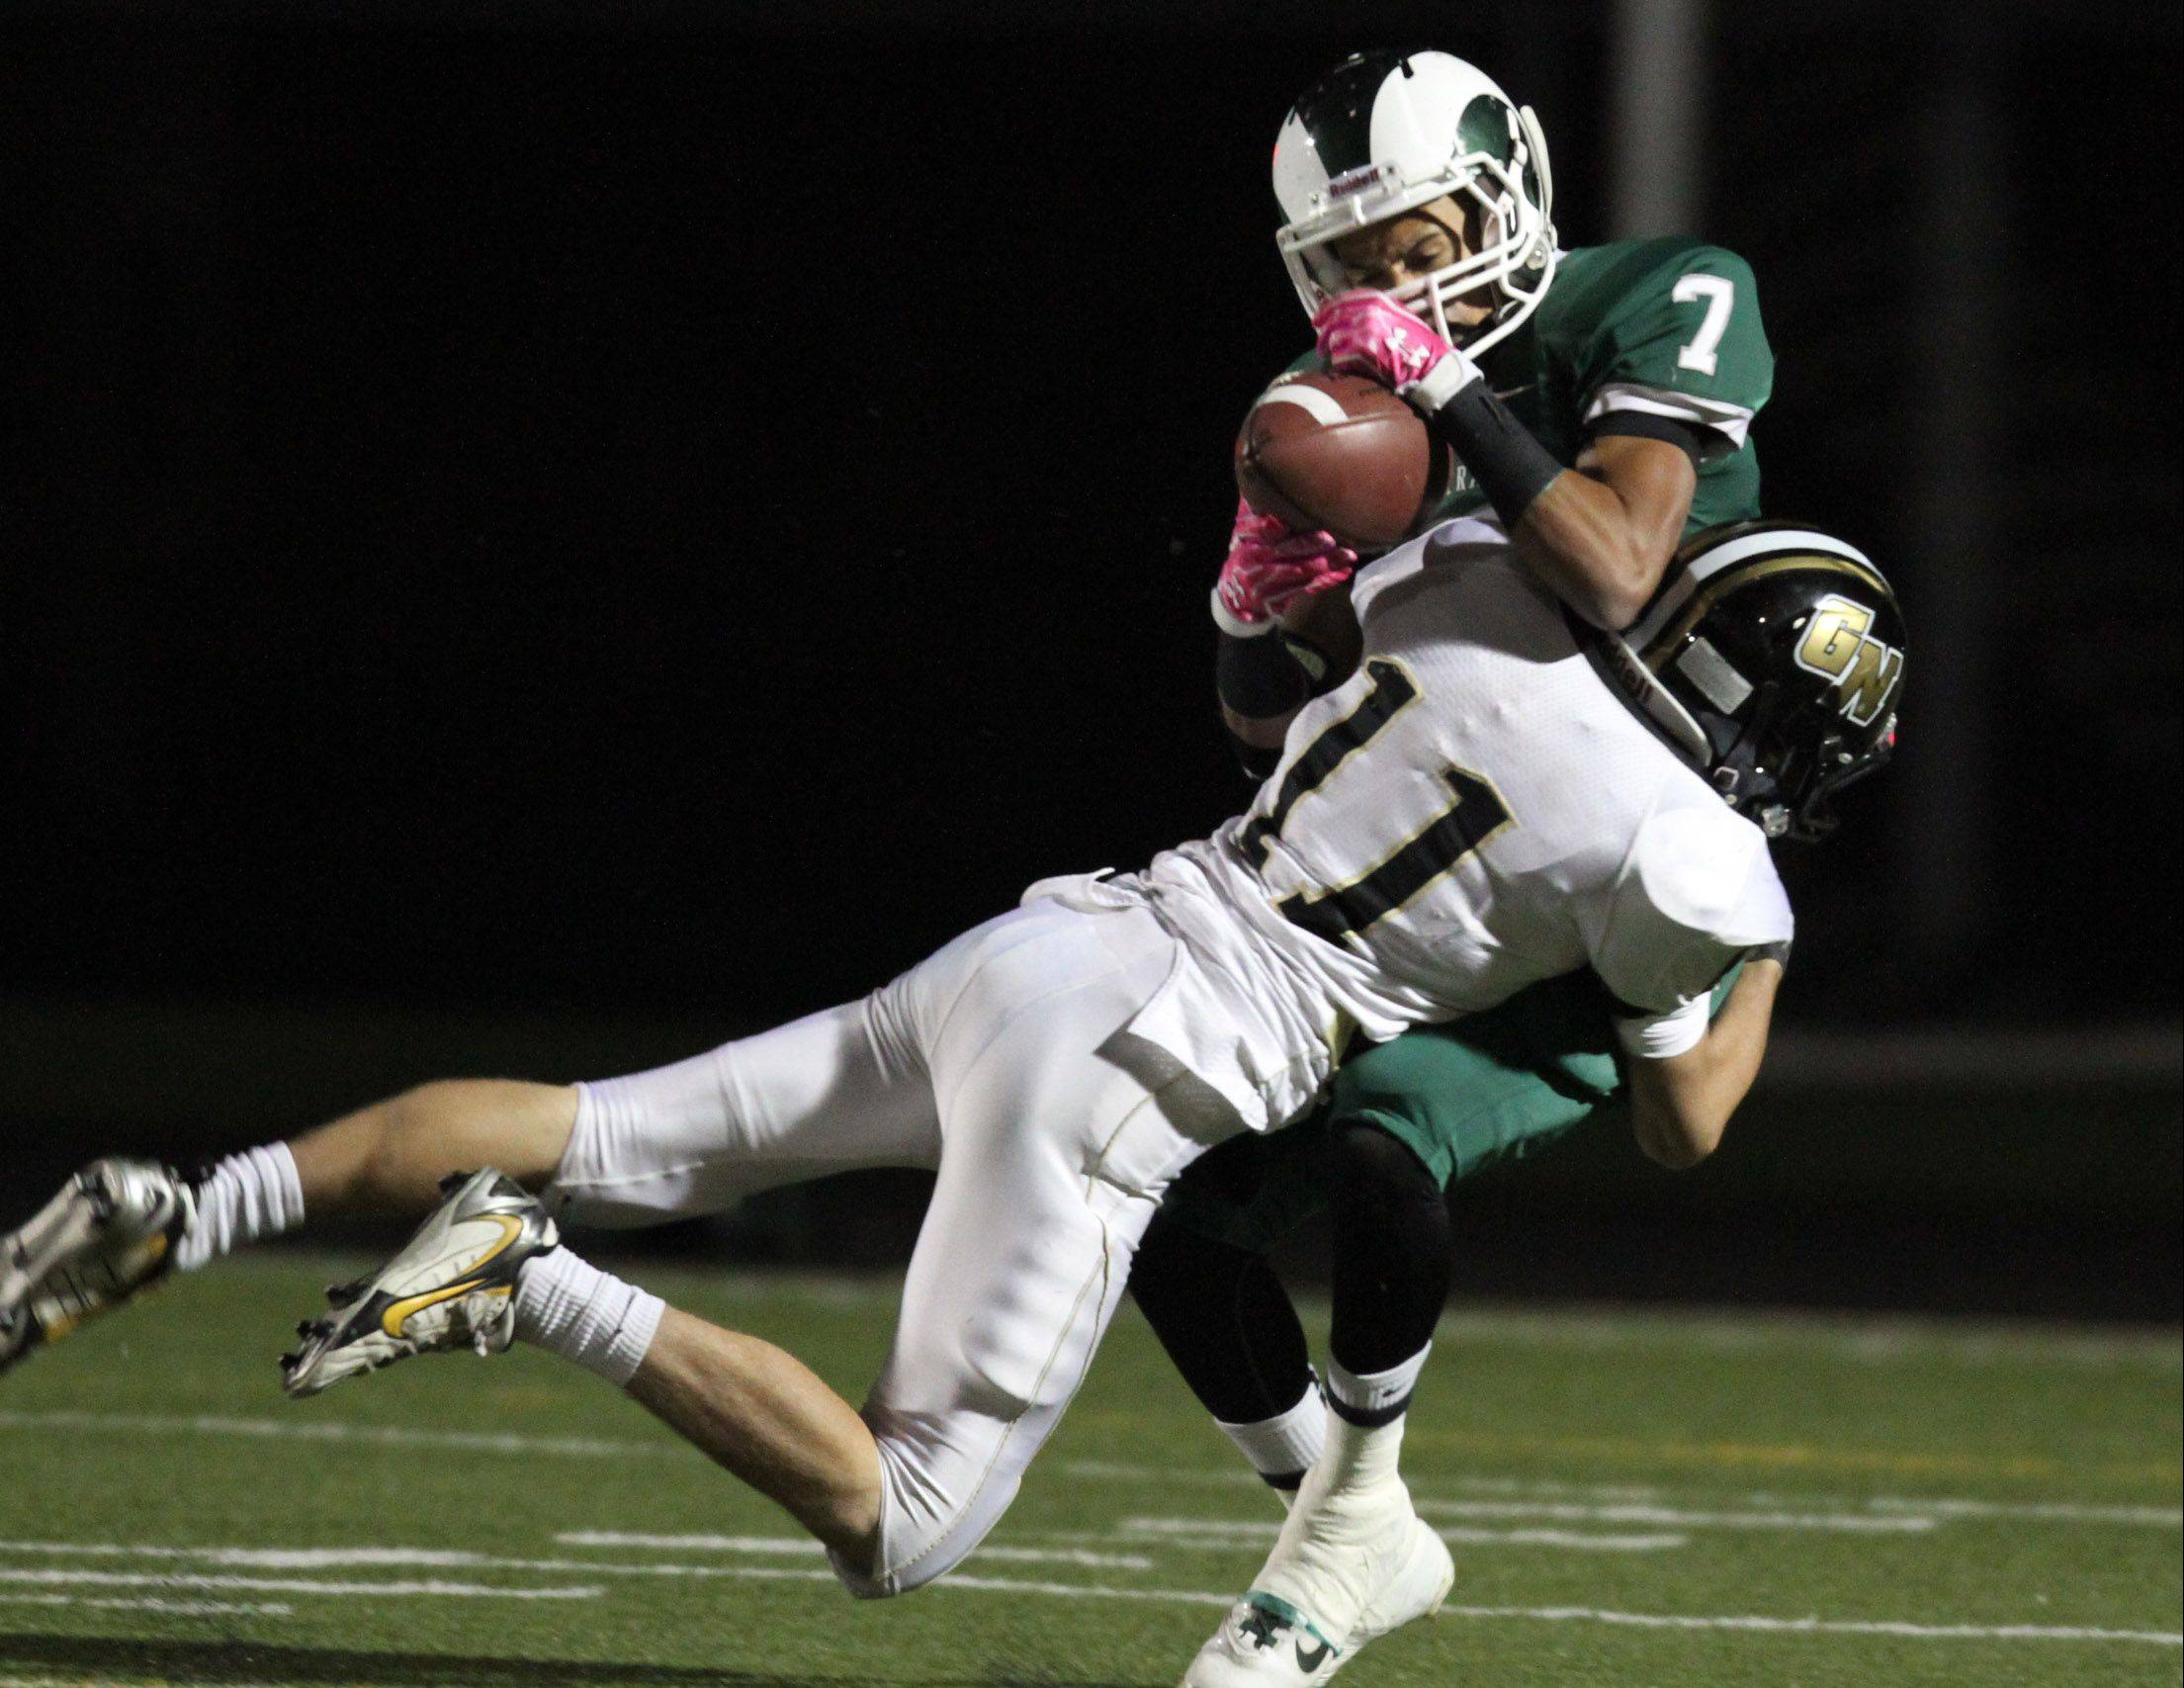 Grayslake Central's Devon Osburn is tackled by Grayslake North defender Jake Geary just last season. Geary is now an assistant coach with the Knights.